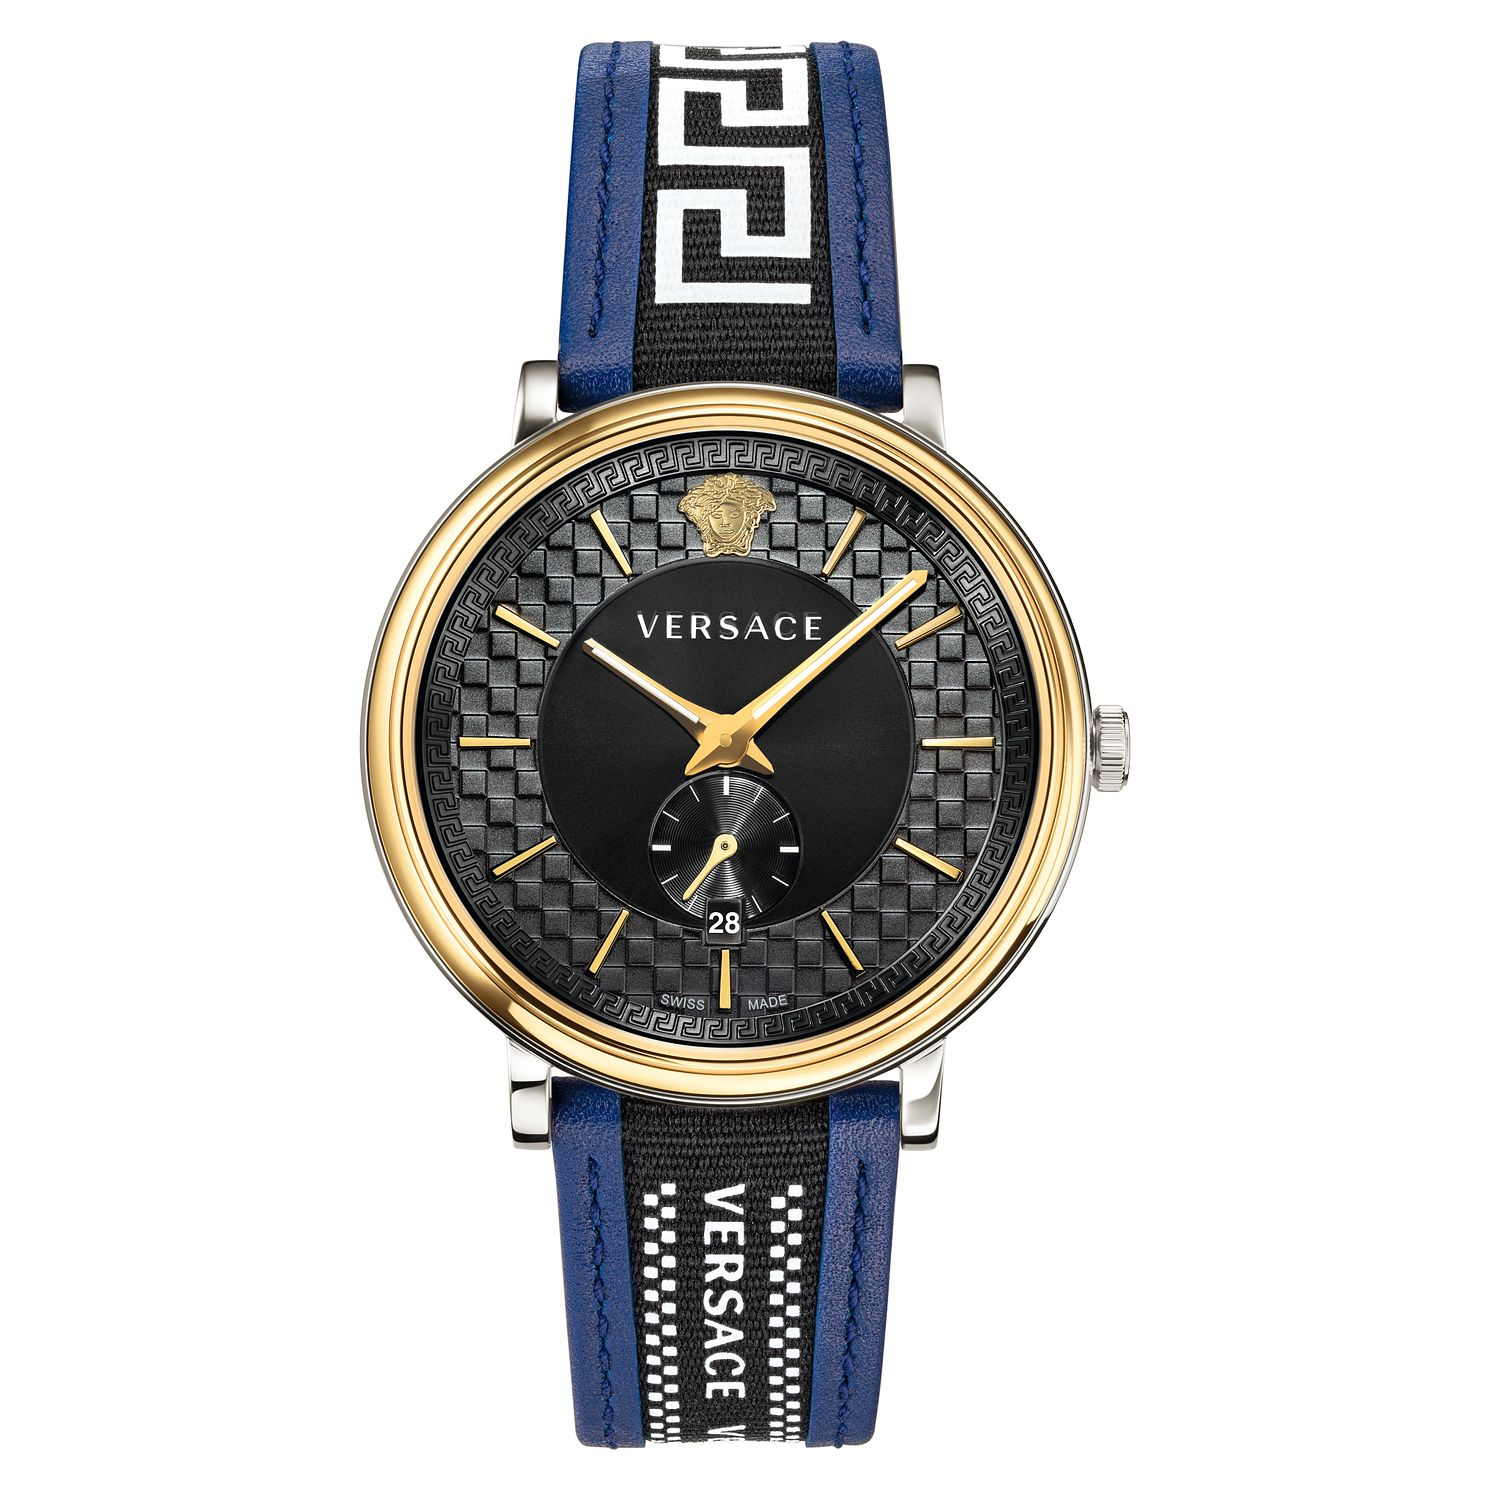 Versace V-Circle Men's Blue Patterned Leather Strap Watch - Product number 5824087